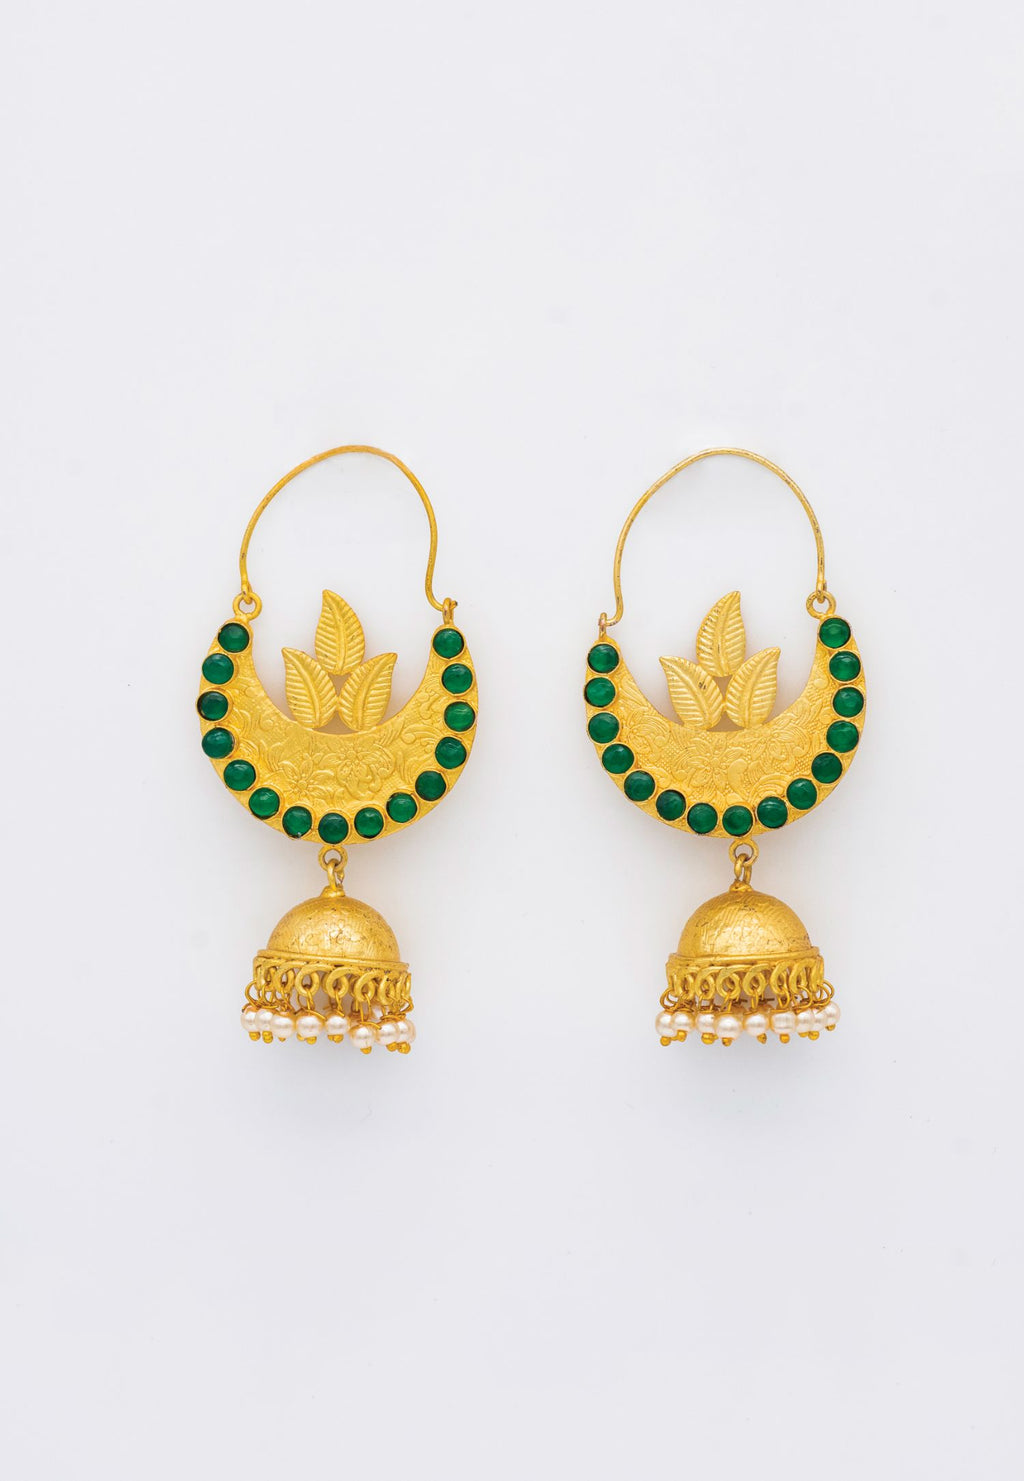 GOLD JHUMKA STYLE EARRINGS WITH GREEN STONES